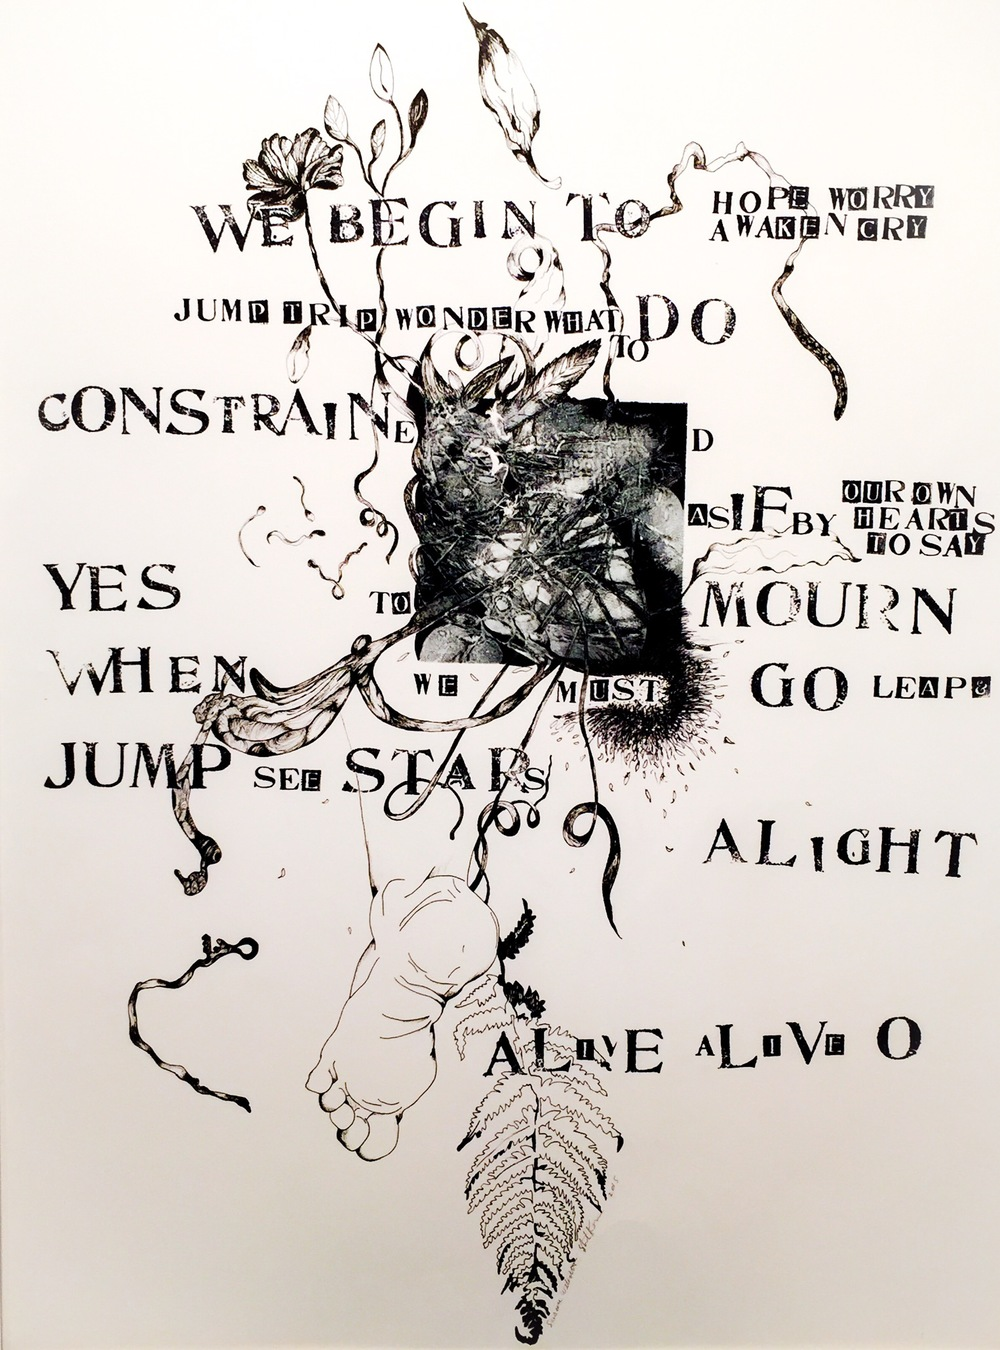 Alight   23 x 30 inches  mixed media  image: Susan Webster   hand stamped text:Stuart Kestenbaum   2015